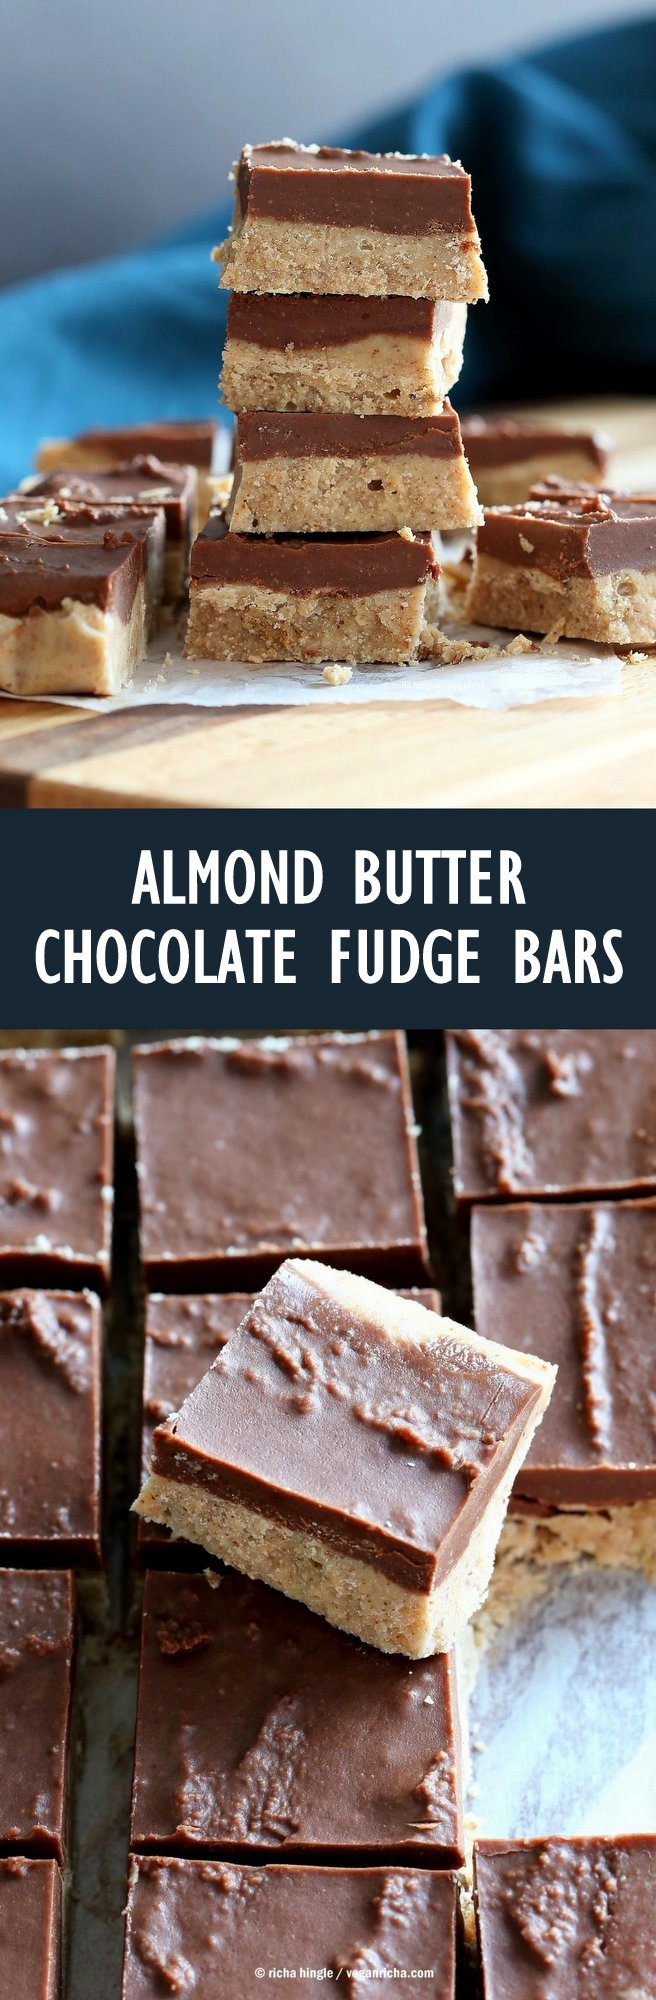 Chocolate Almond Butter Fudge Bars. Easy Vegan Fudge Recipe. Almond Butter or Peanut Butter Fudge. 3 Main ingredients! Nut butter, Coconut butter and maple syrup #Glutenfree #Soyfree #Vegan #Recipe | VeganRicha.com